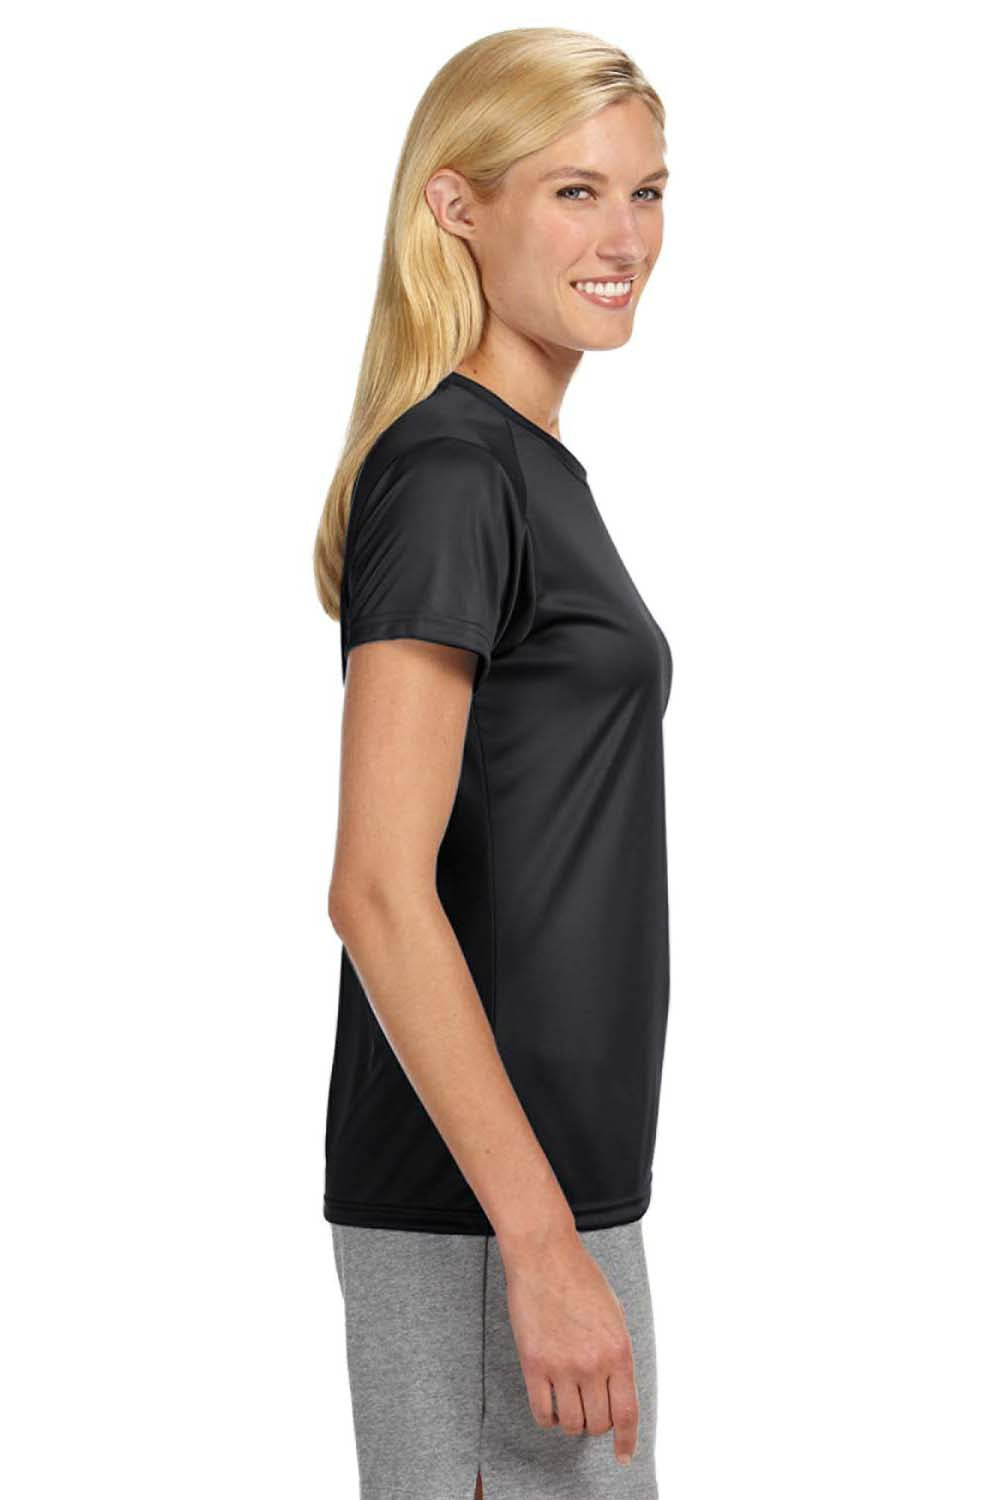 A4 NW3201 Womens Cooling Performance Moisture Wicking Short Sleeve Crewneck T-Shirt Black Side